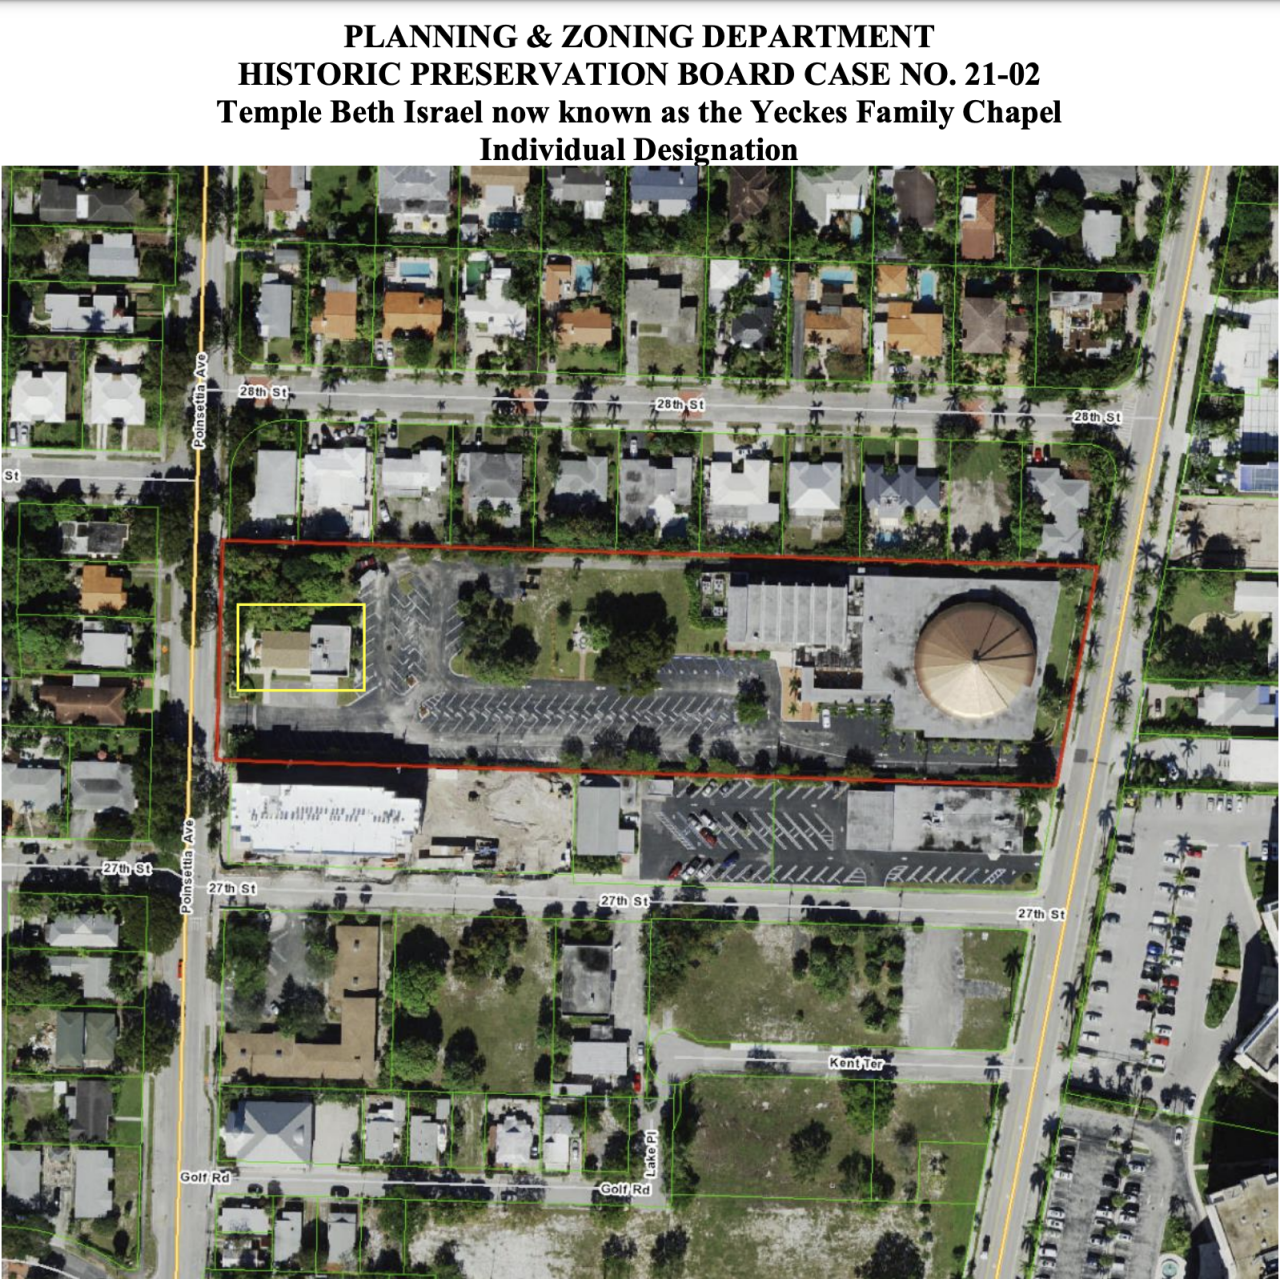 The oldest synagogue in Palm Beach County, Temple Beth Israel, is being considered again to be designated as a historic place.